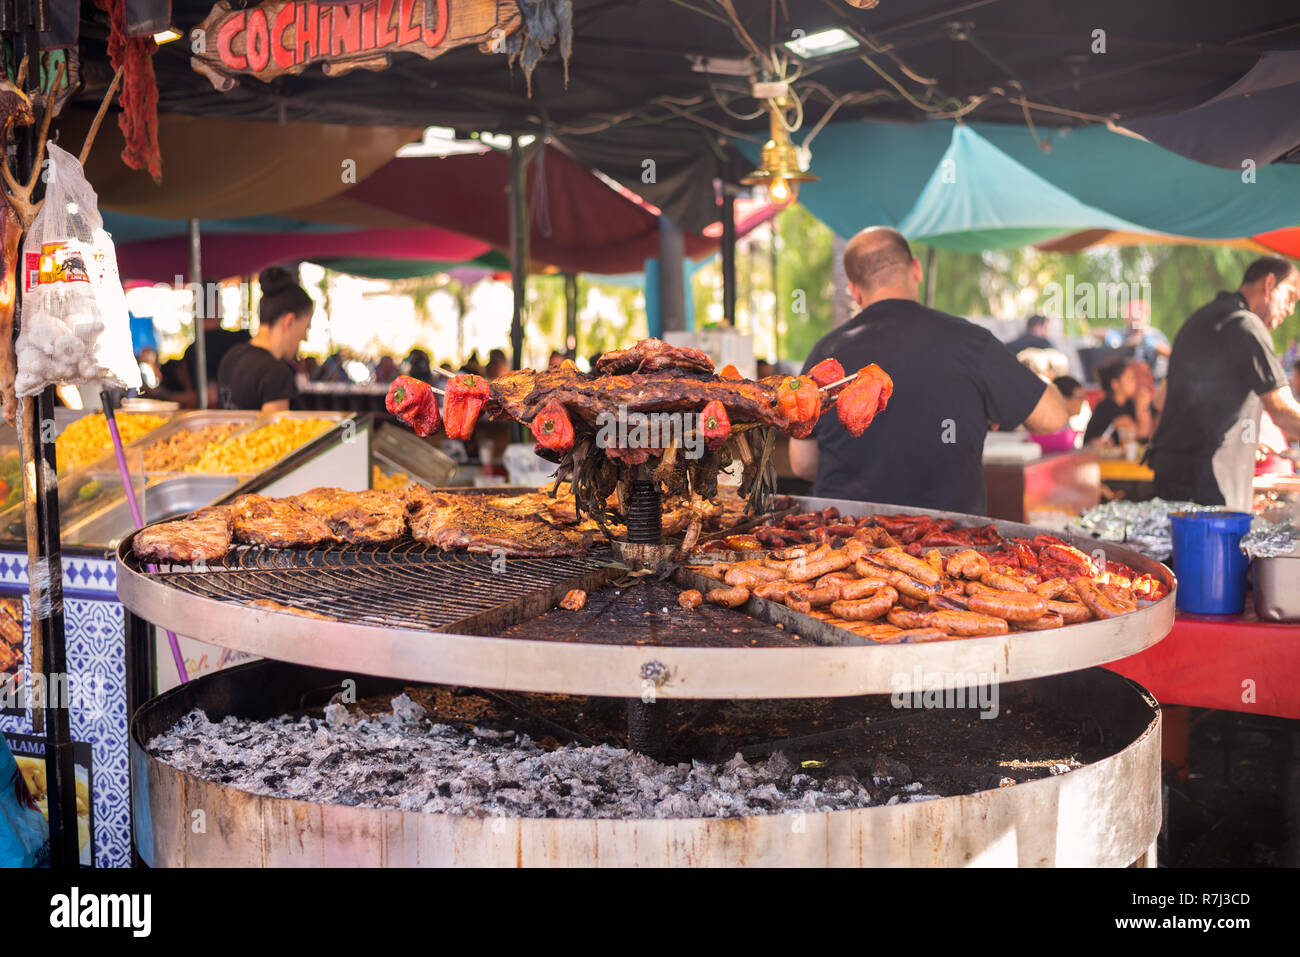 Buffet Libre Vigo October 12 Spain Stock Photos October 12 Spain Stock Images Alamy